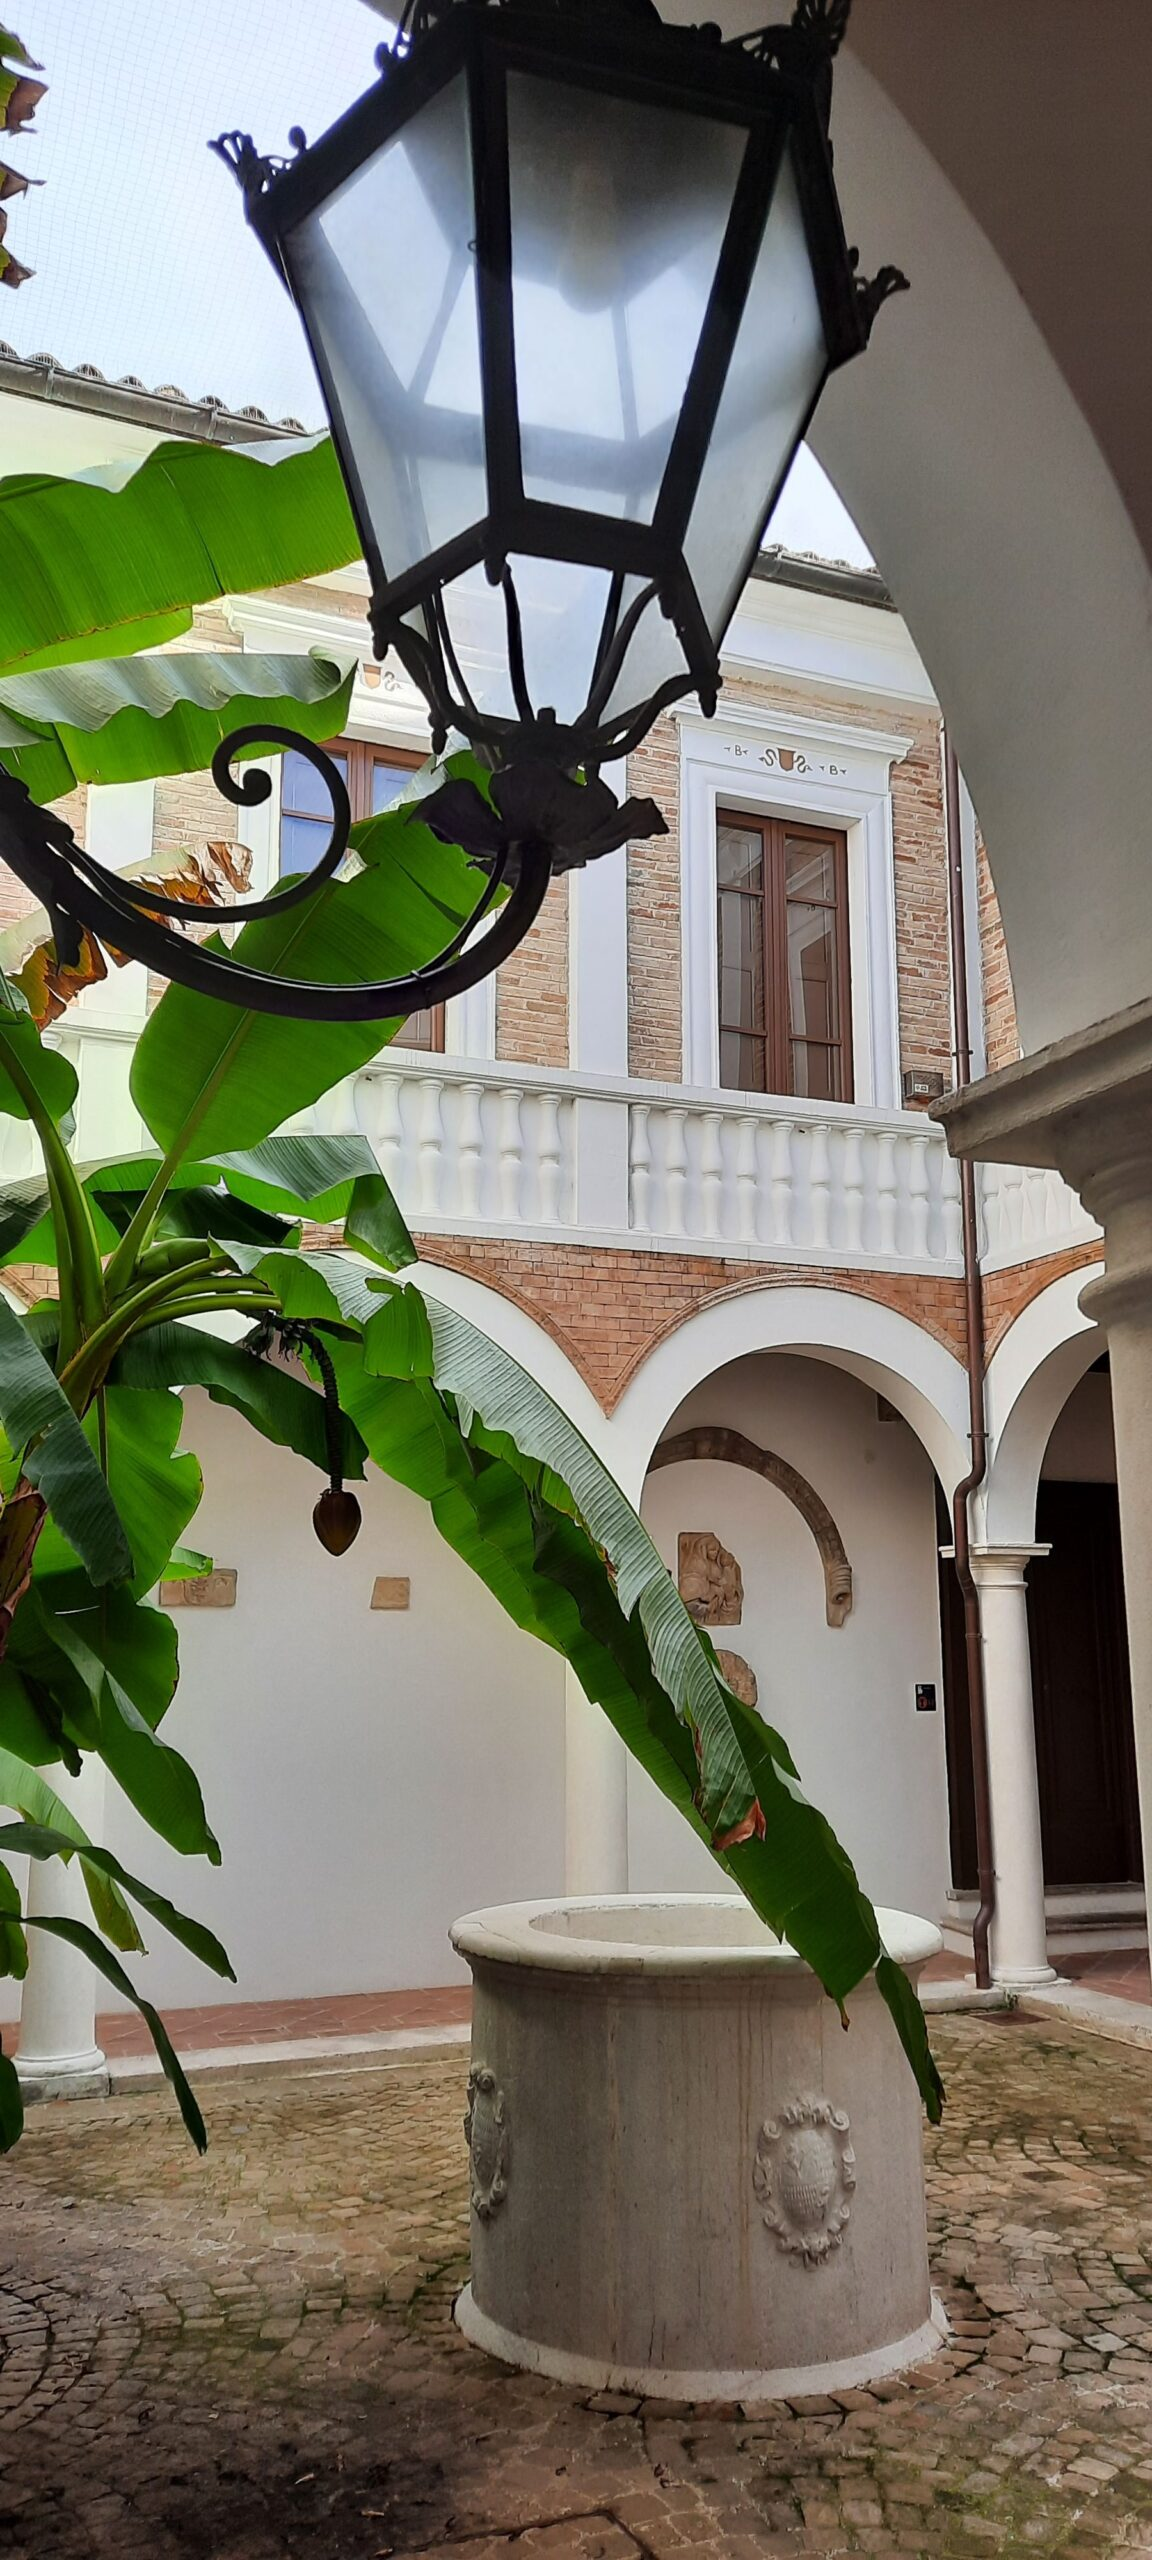 Palazzetto Baviera - cortile interno